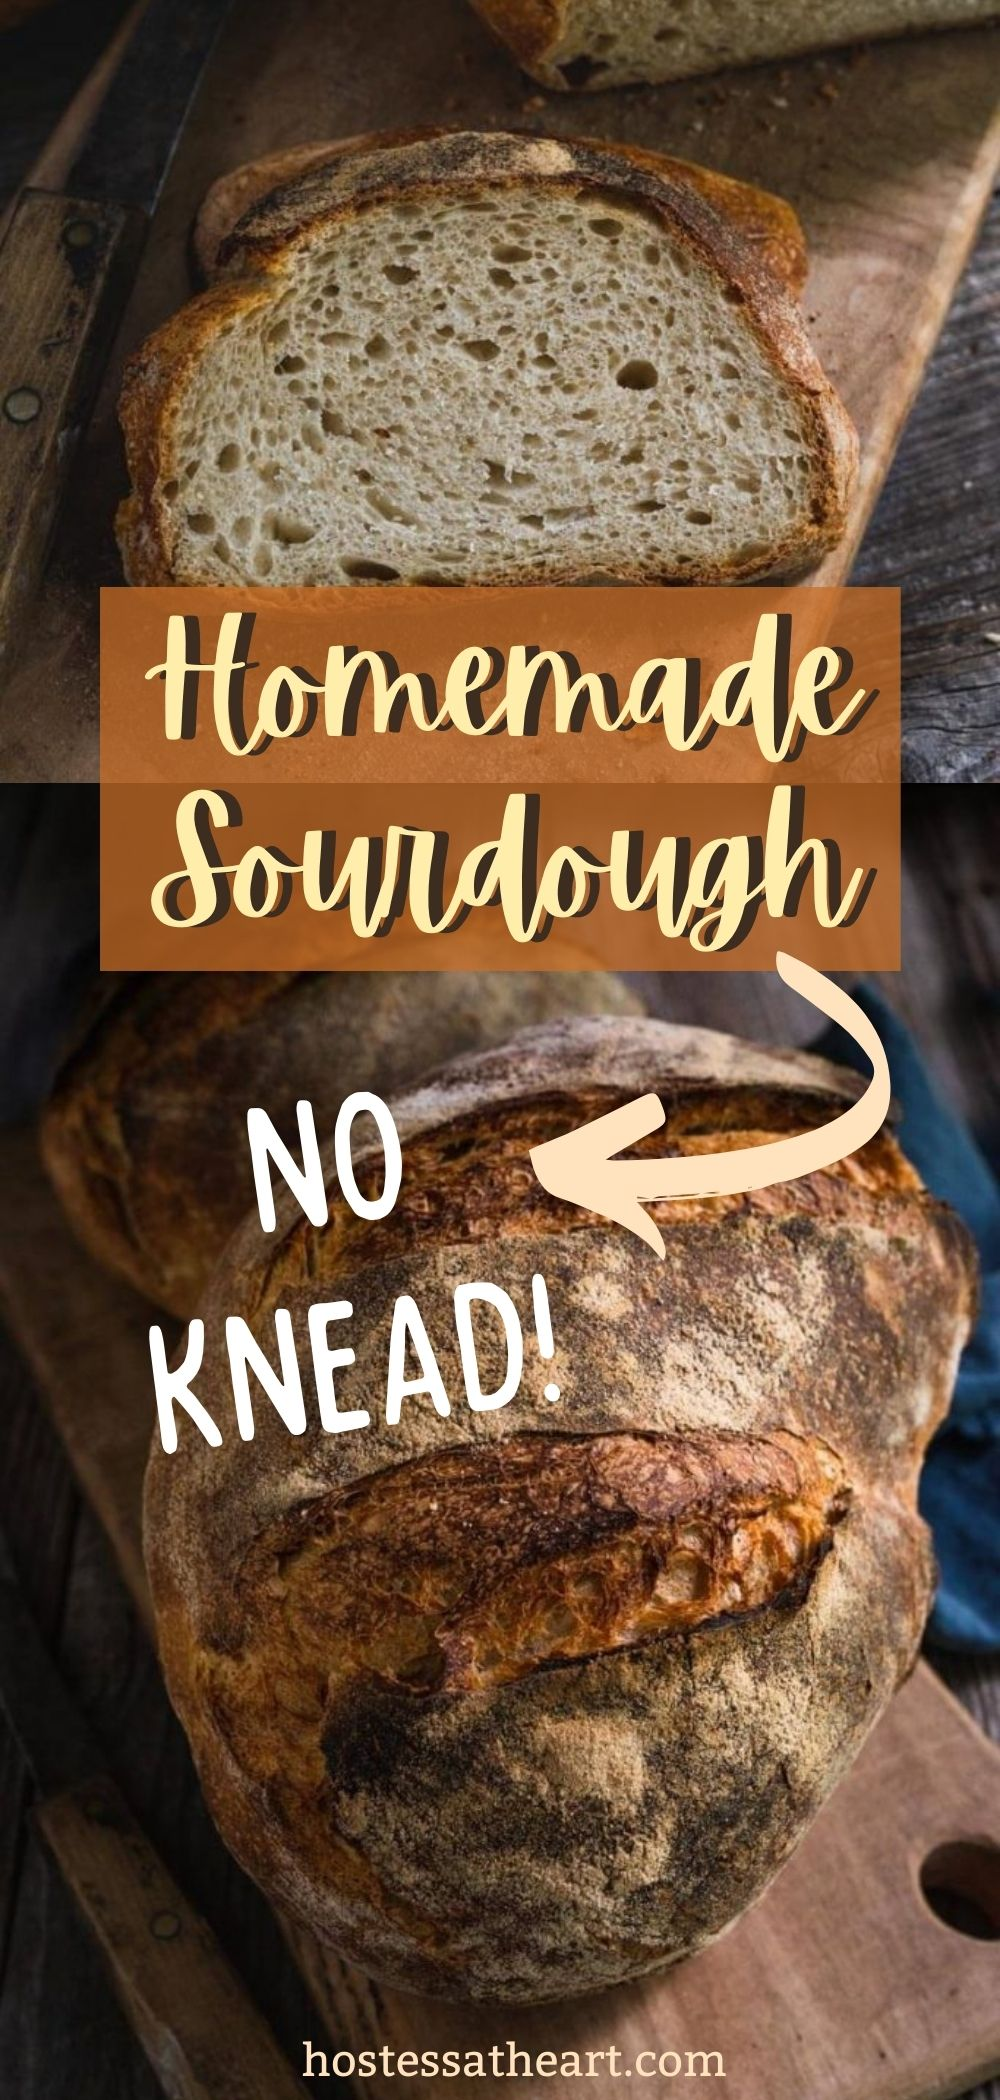 Two photo collage for Pinterest of slices of homemade sourdough bread over a photo of the uncut loaves.